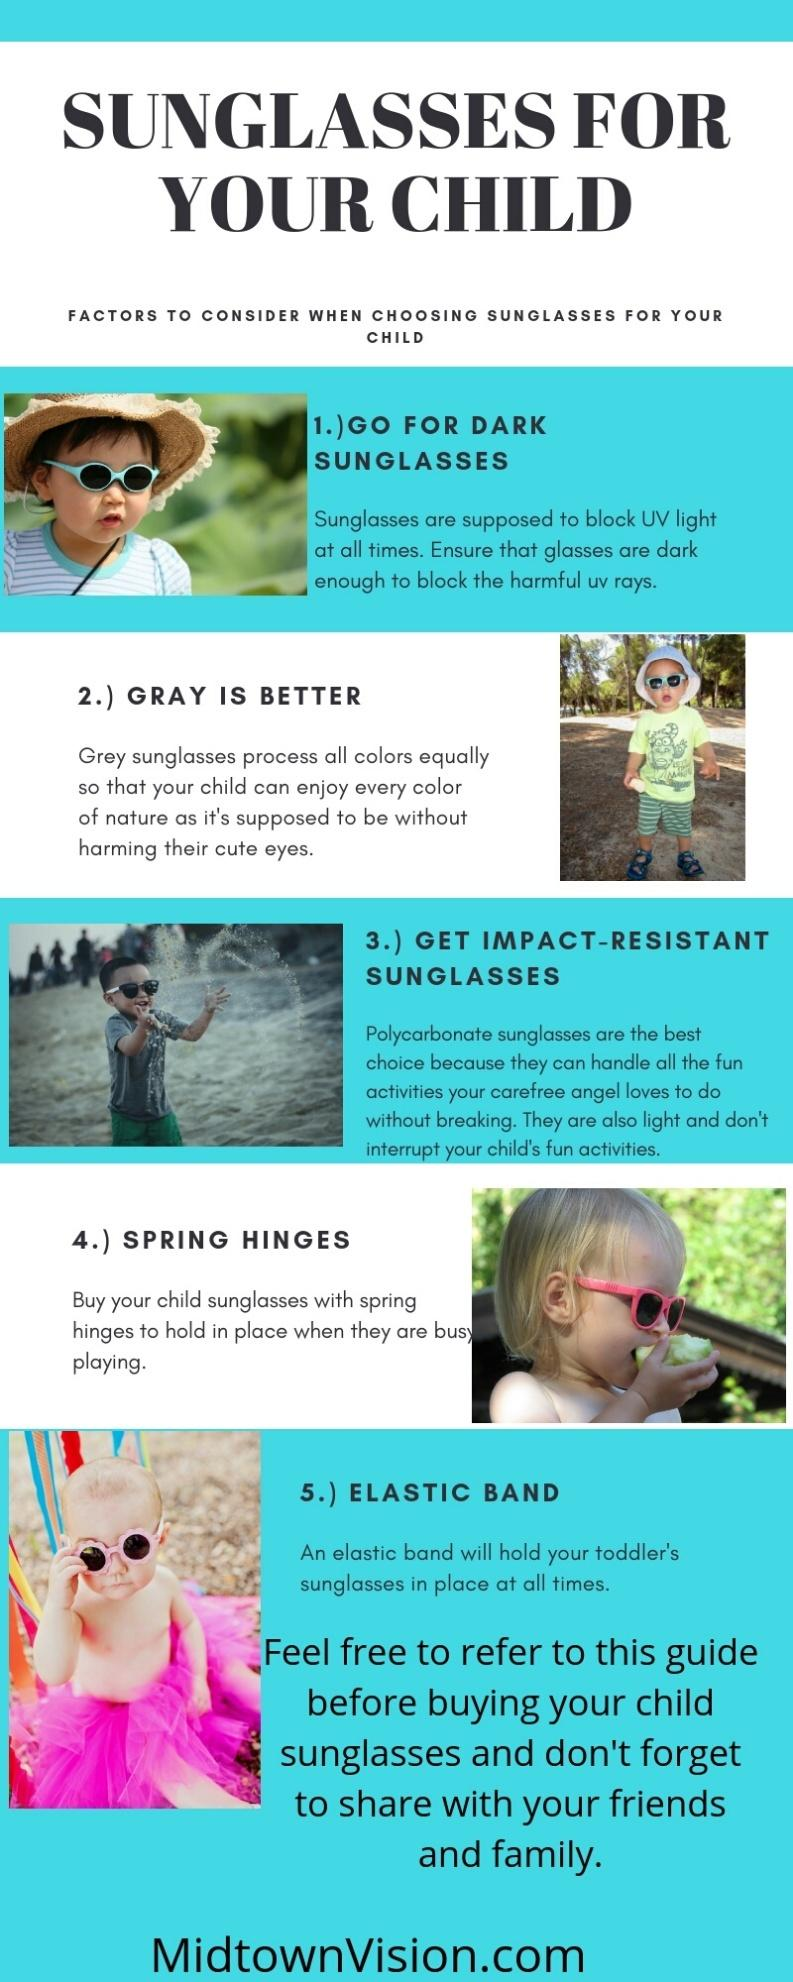 Sunglasses for Your Child Infographic